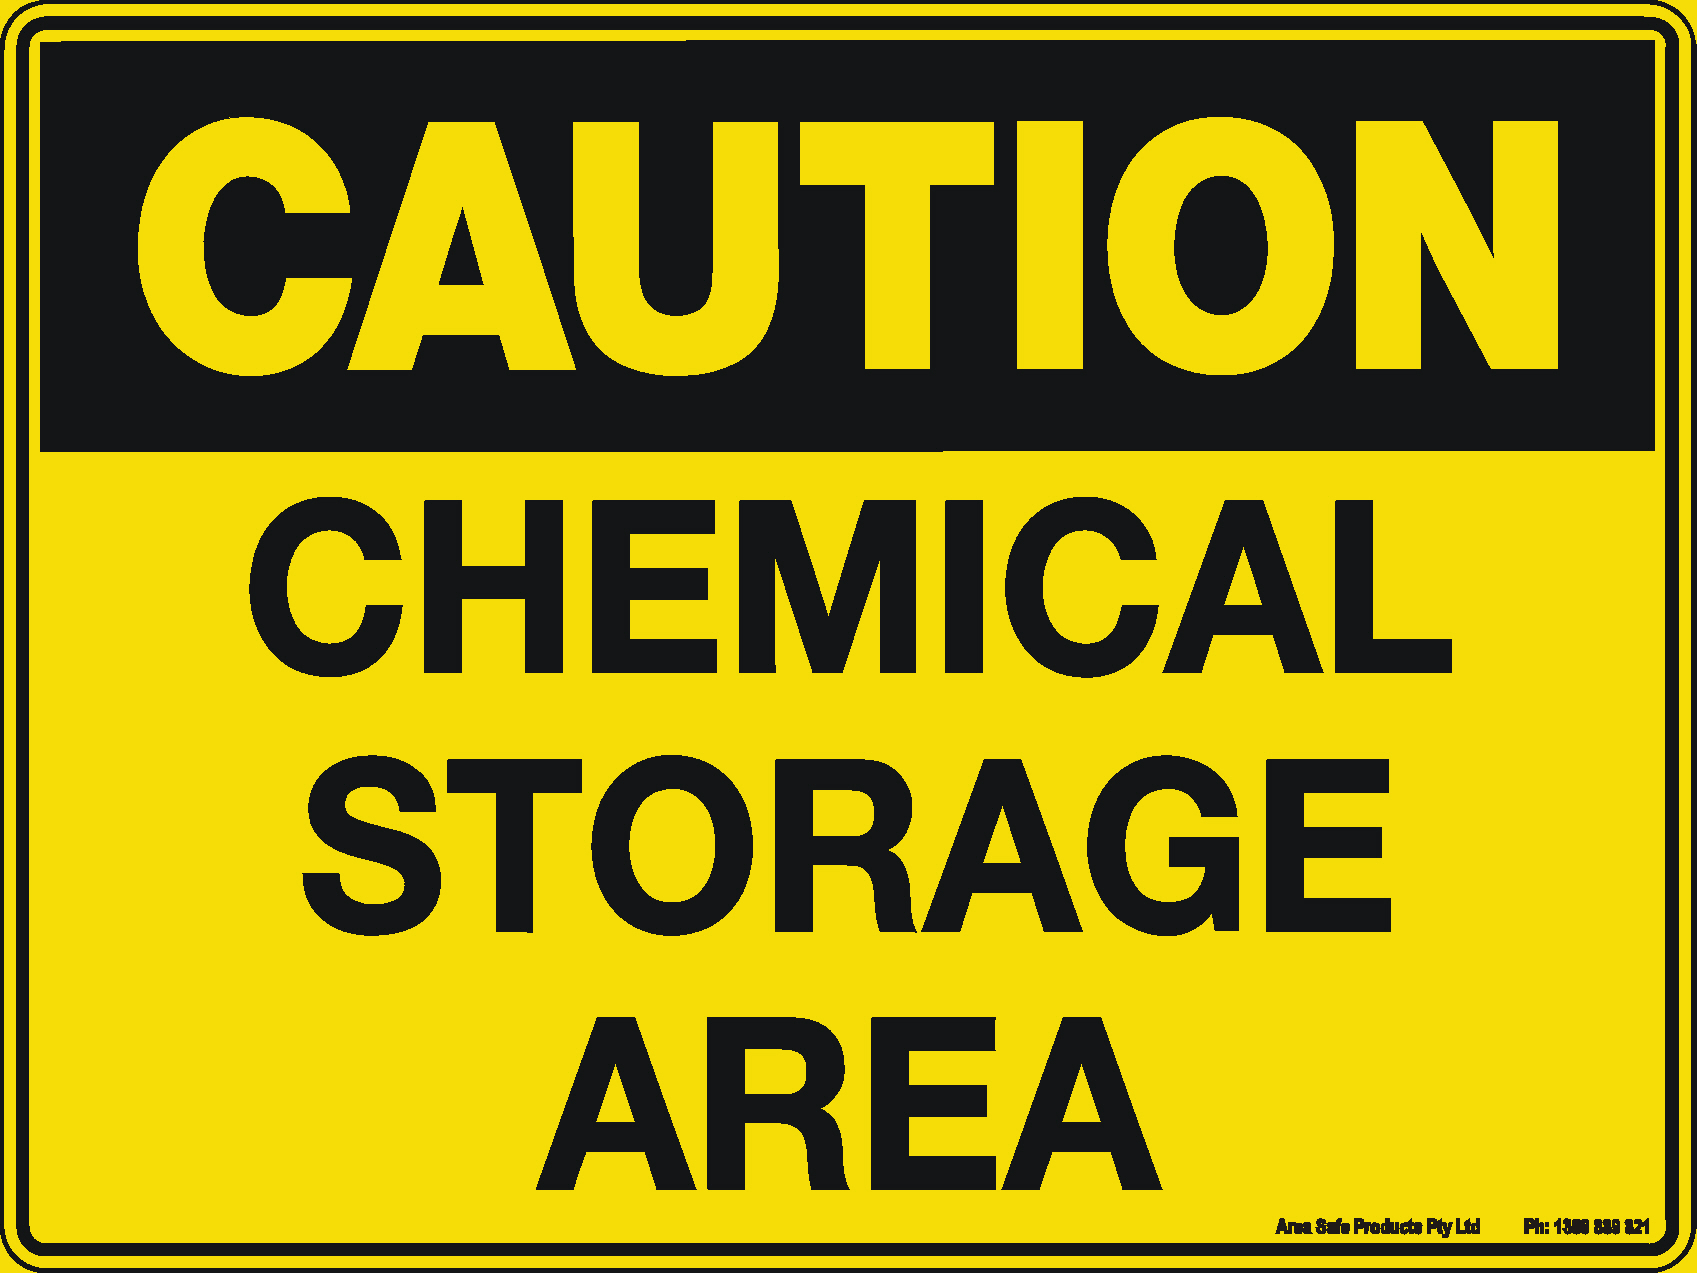 Traffic Signs Us >> Caution Sign - Chemical Storage Area